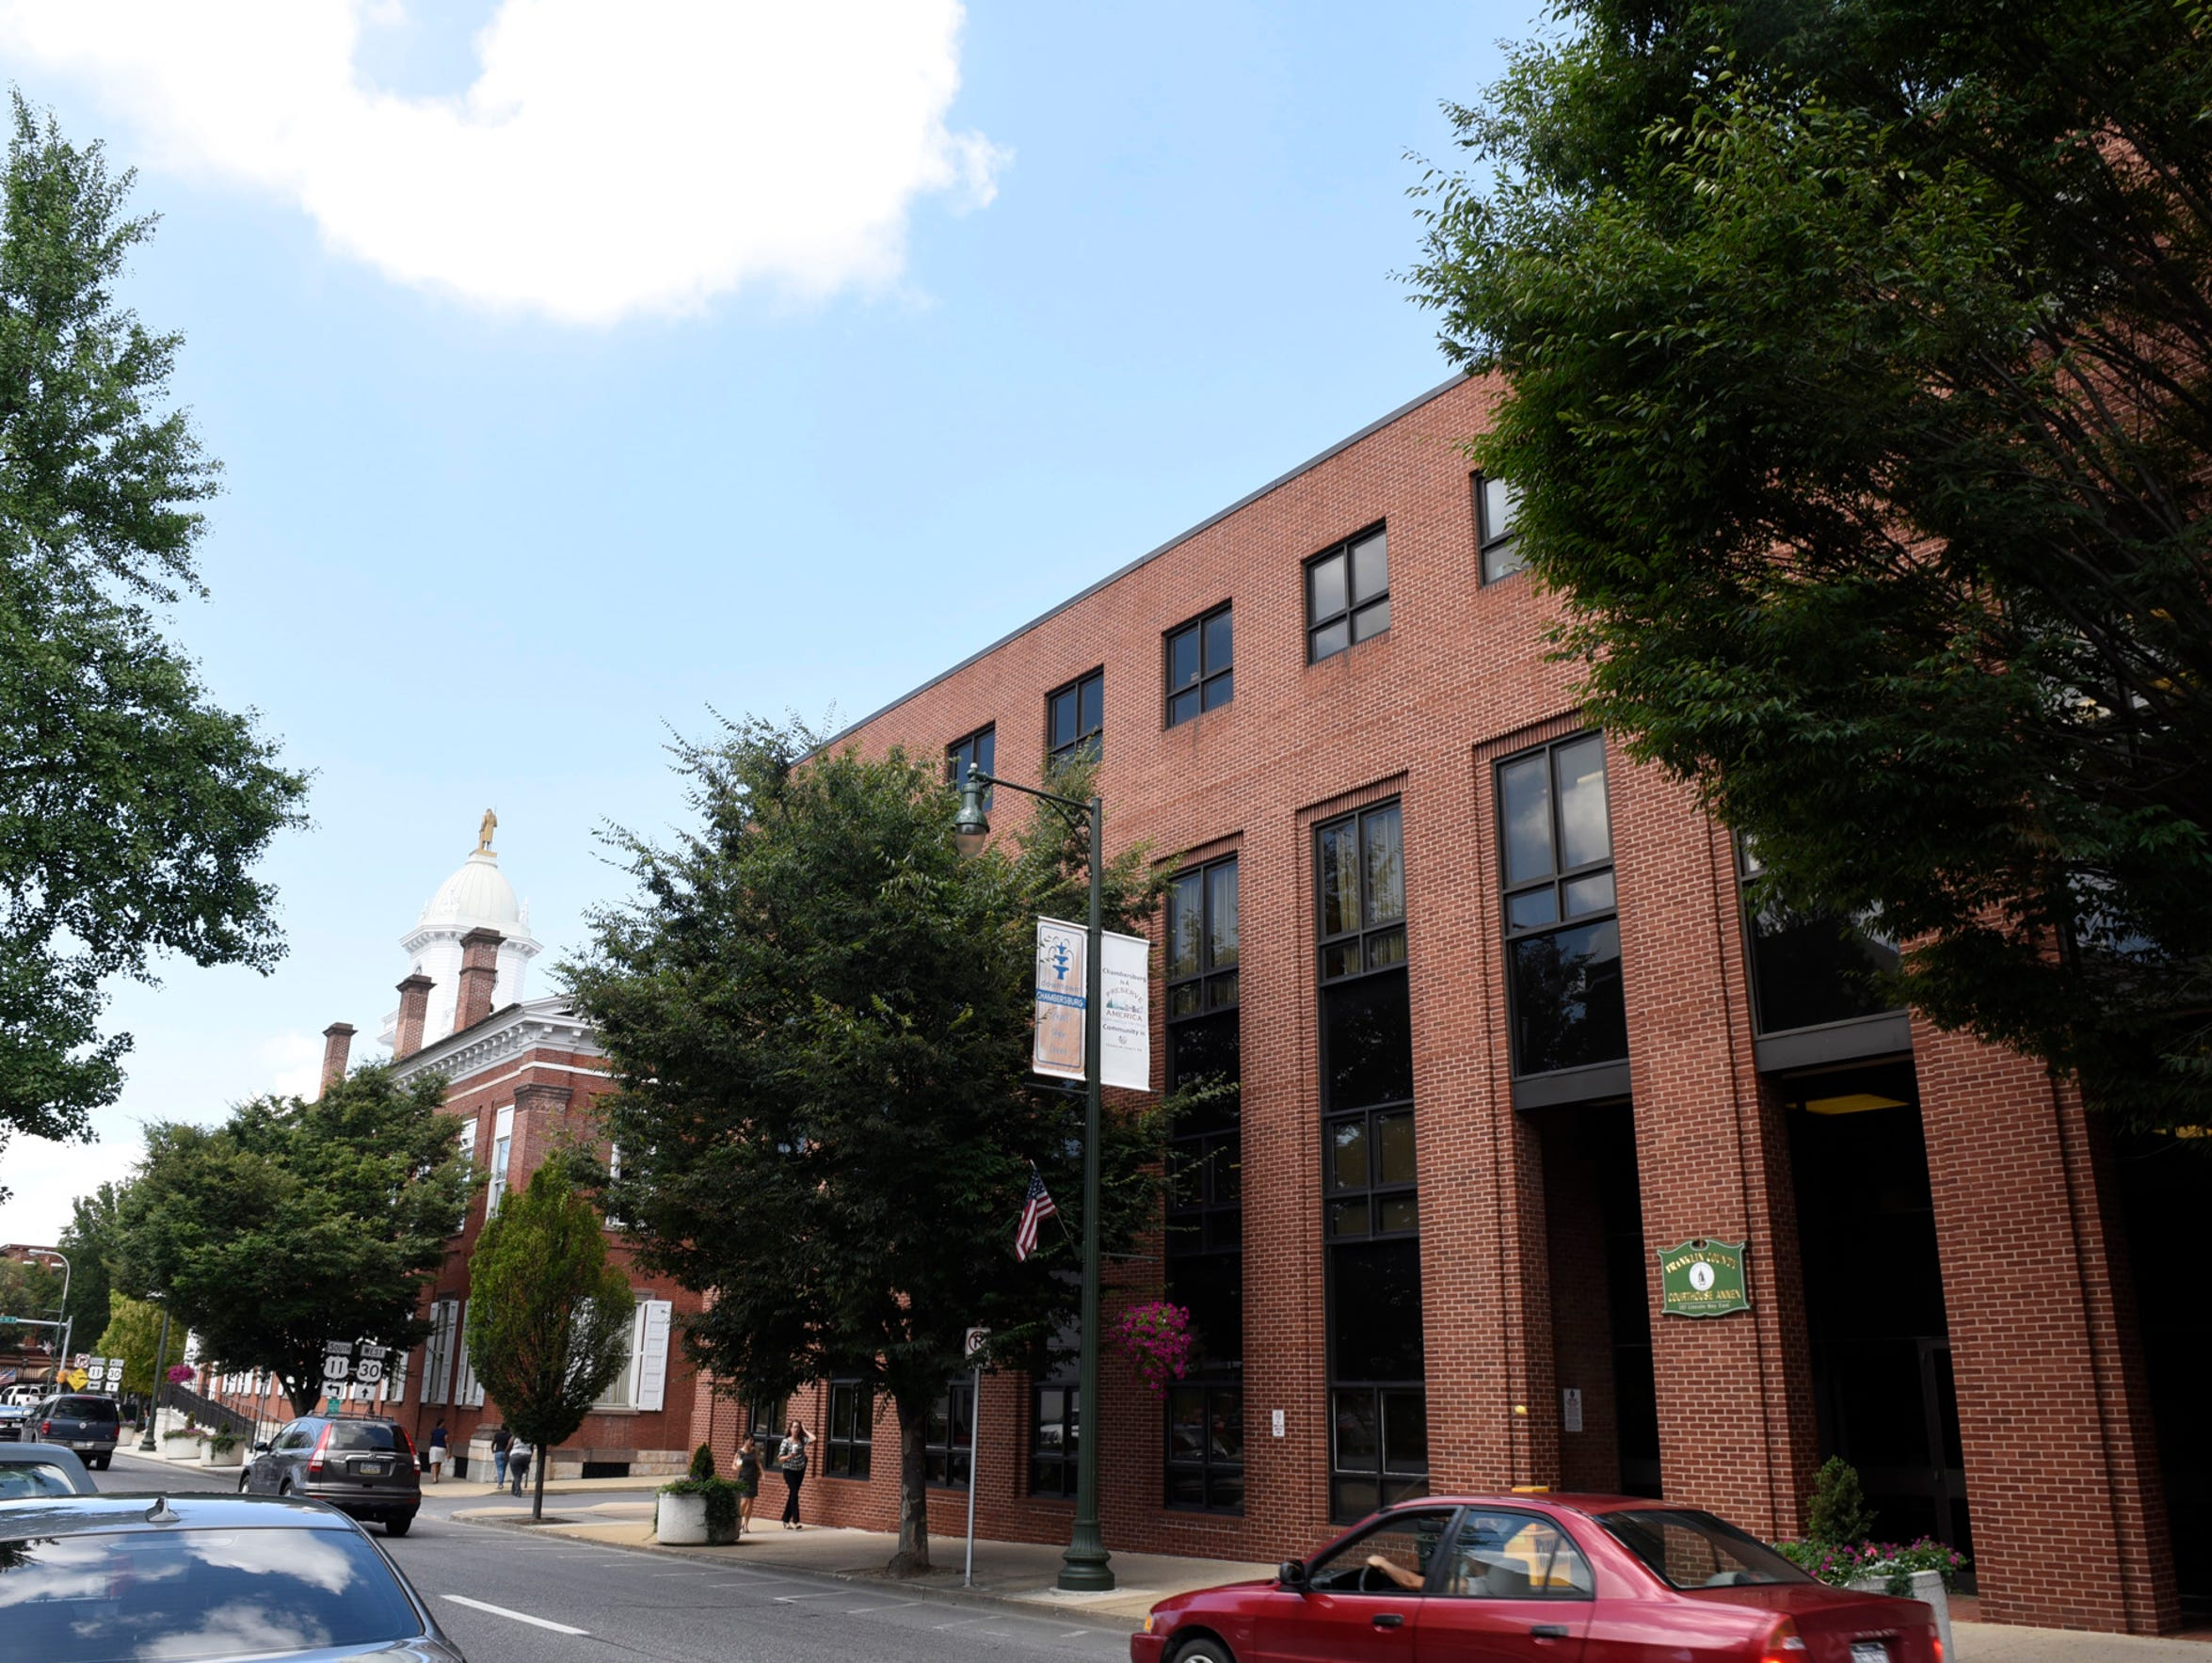 The Franklin County Courthouse Annex is located to